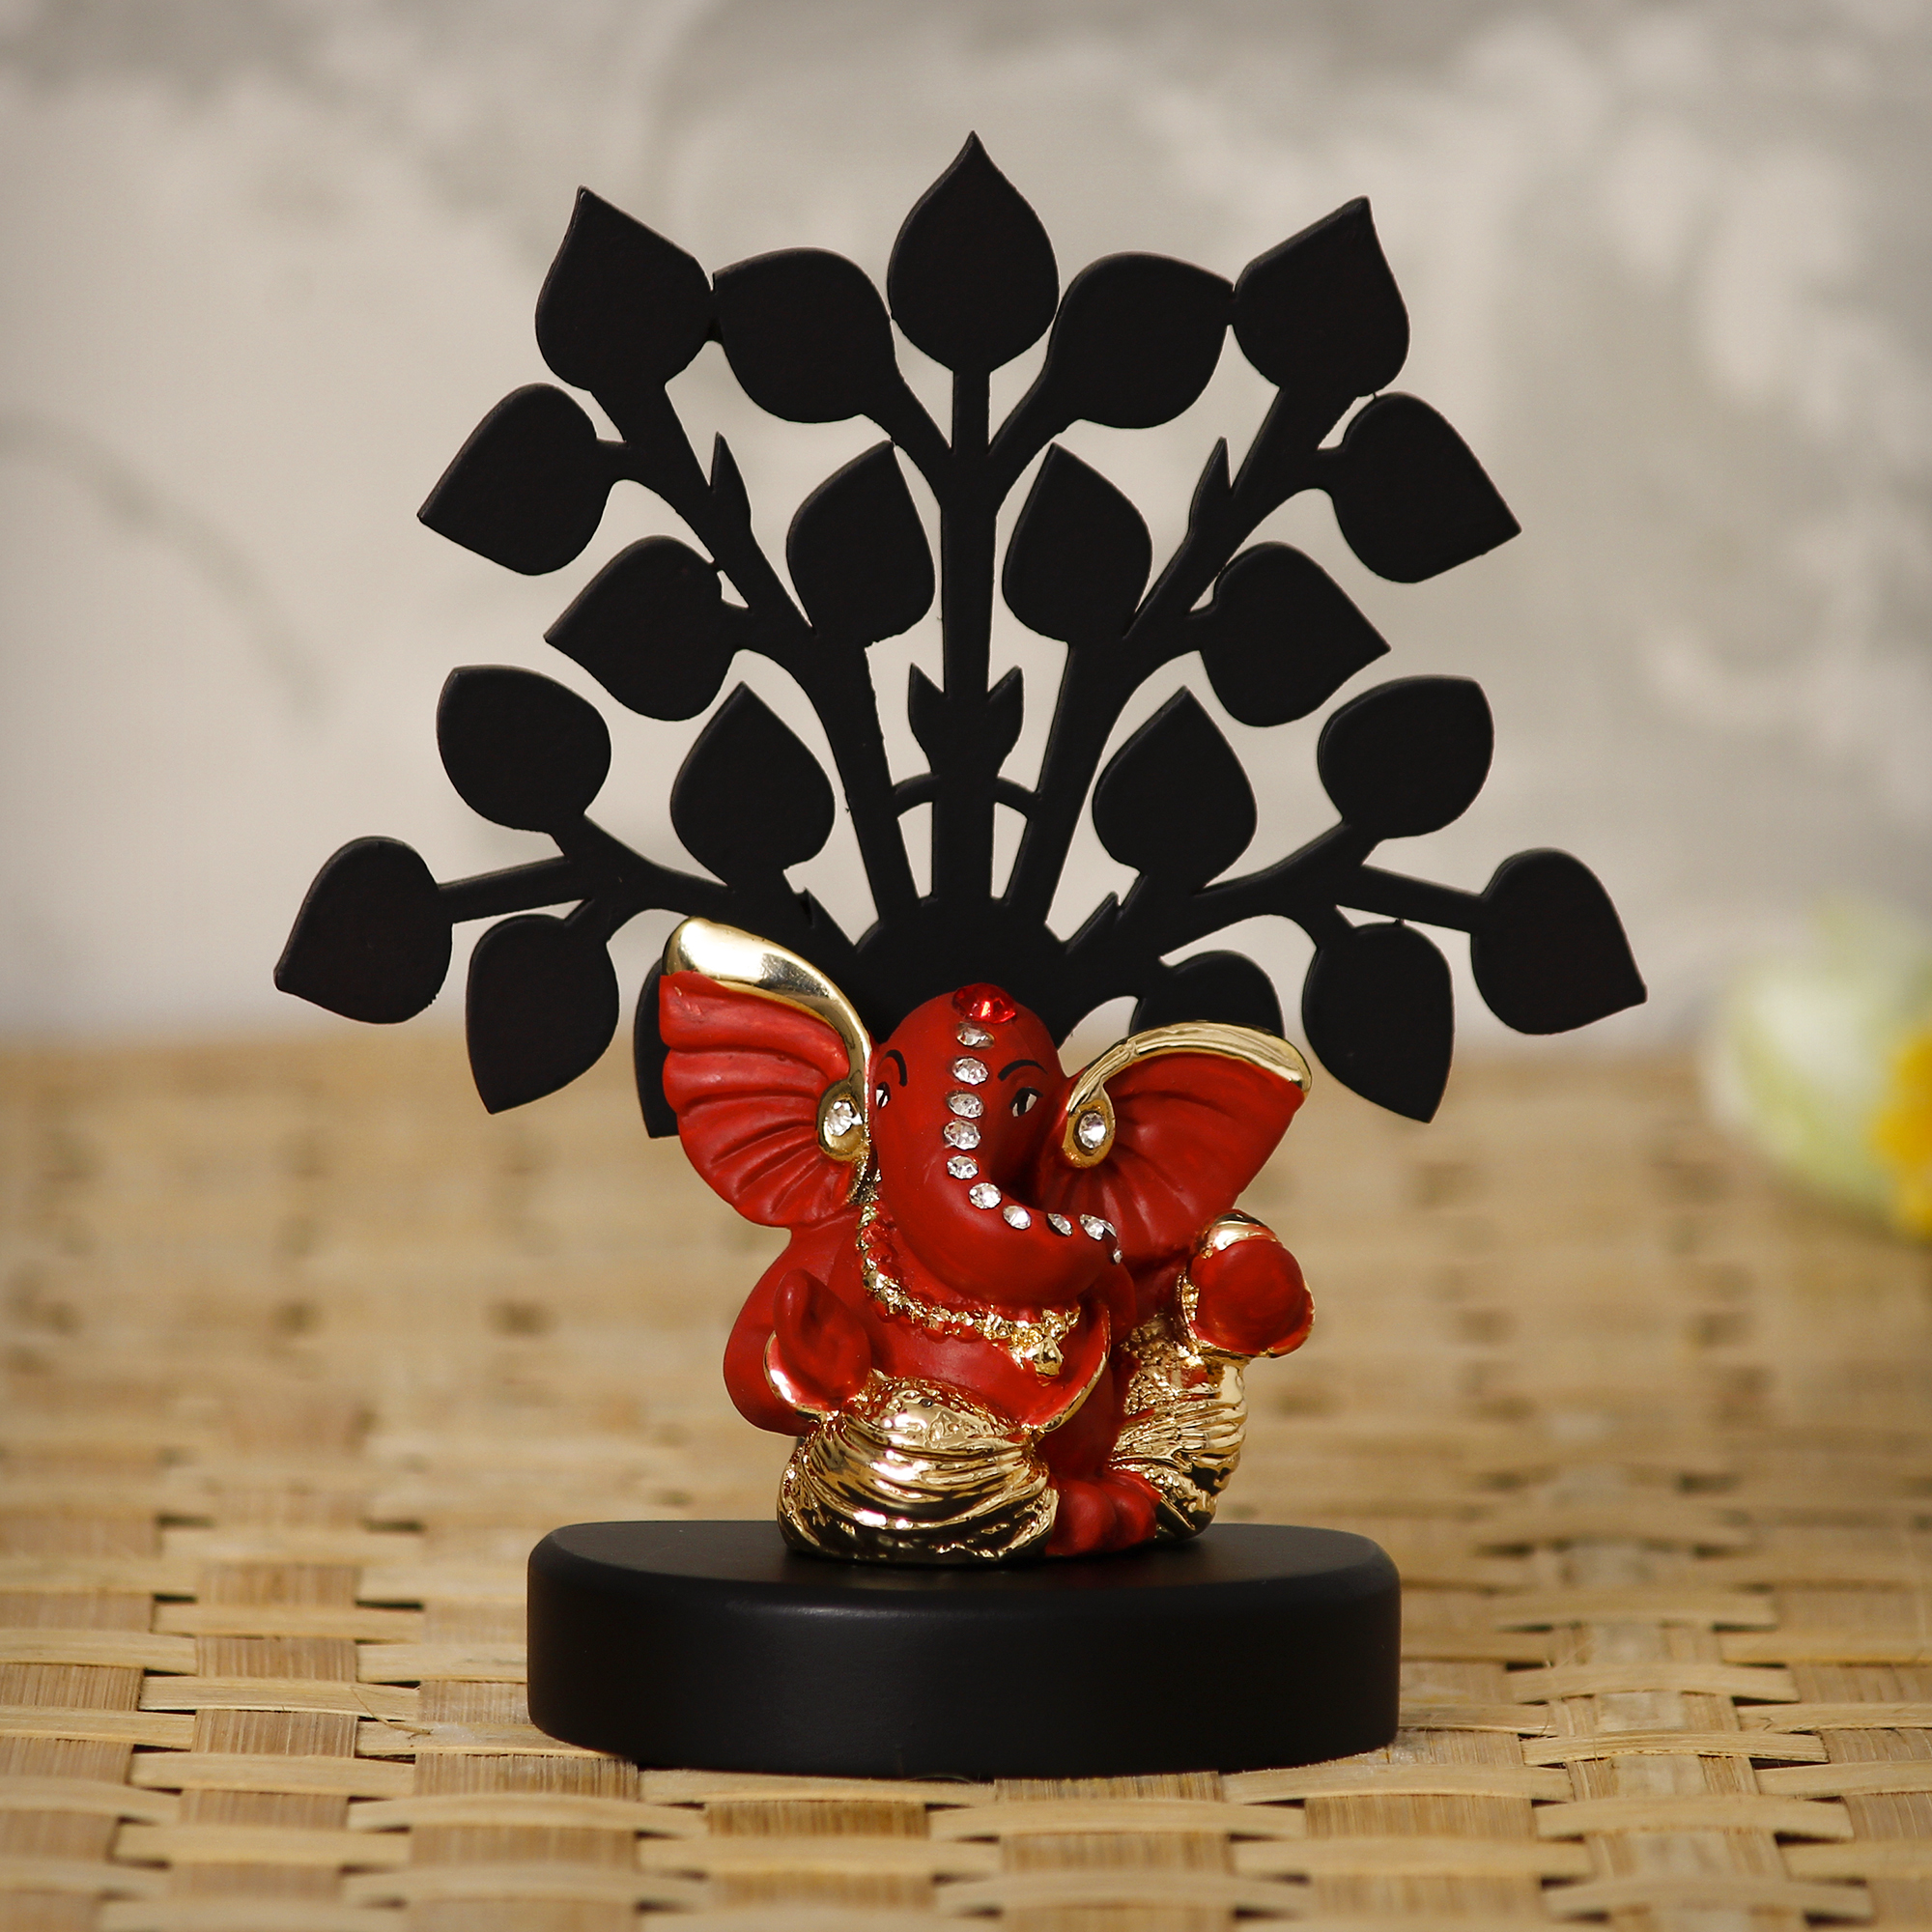 Gold Plated Orange Mini Kaan Ganesha Decorative Showpiece with Wooden Tree for Home/Temple/Office/Car Dashboard Indian Home Decor